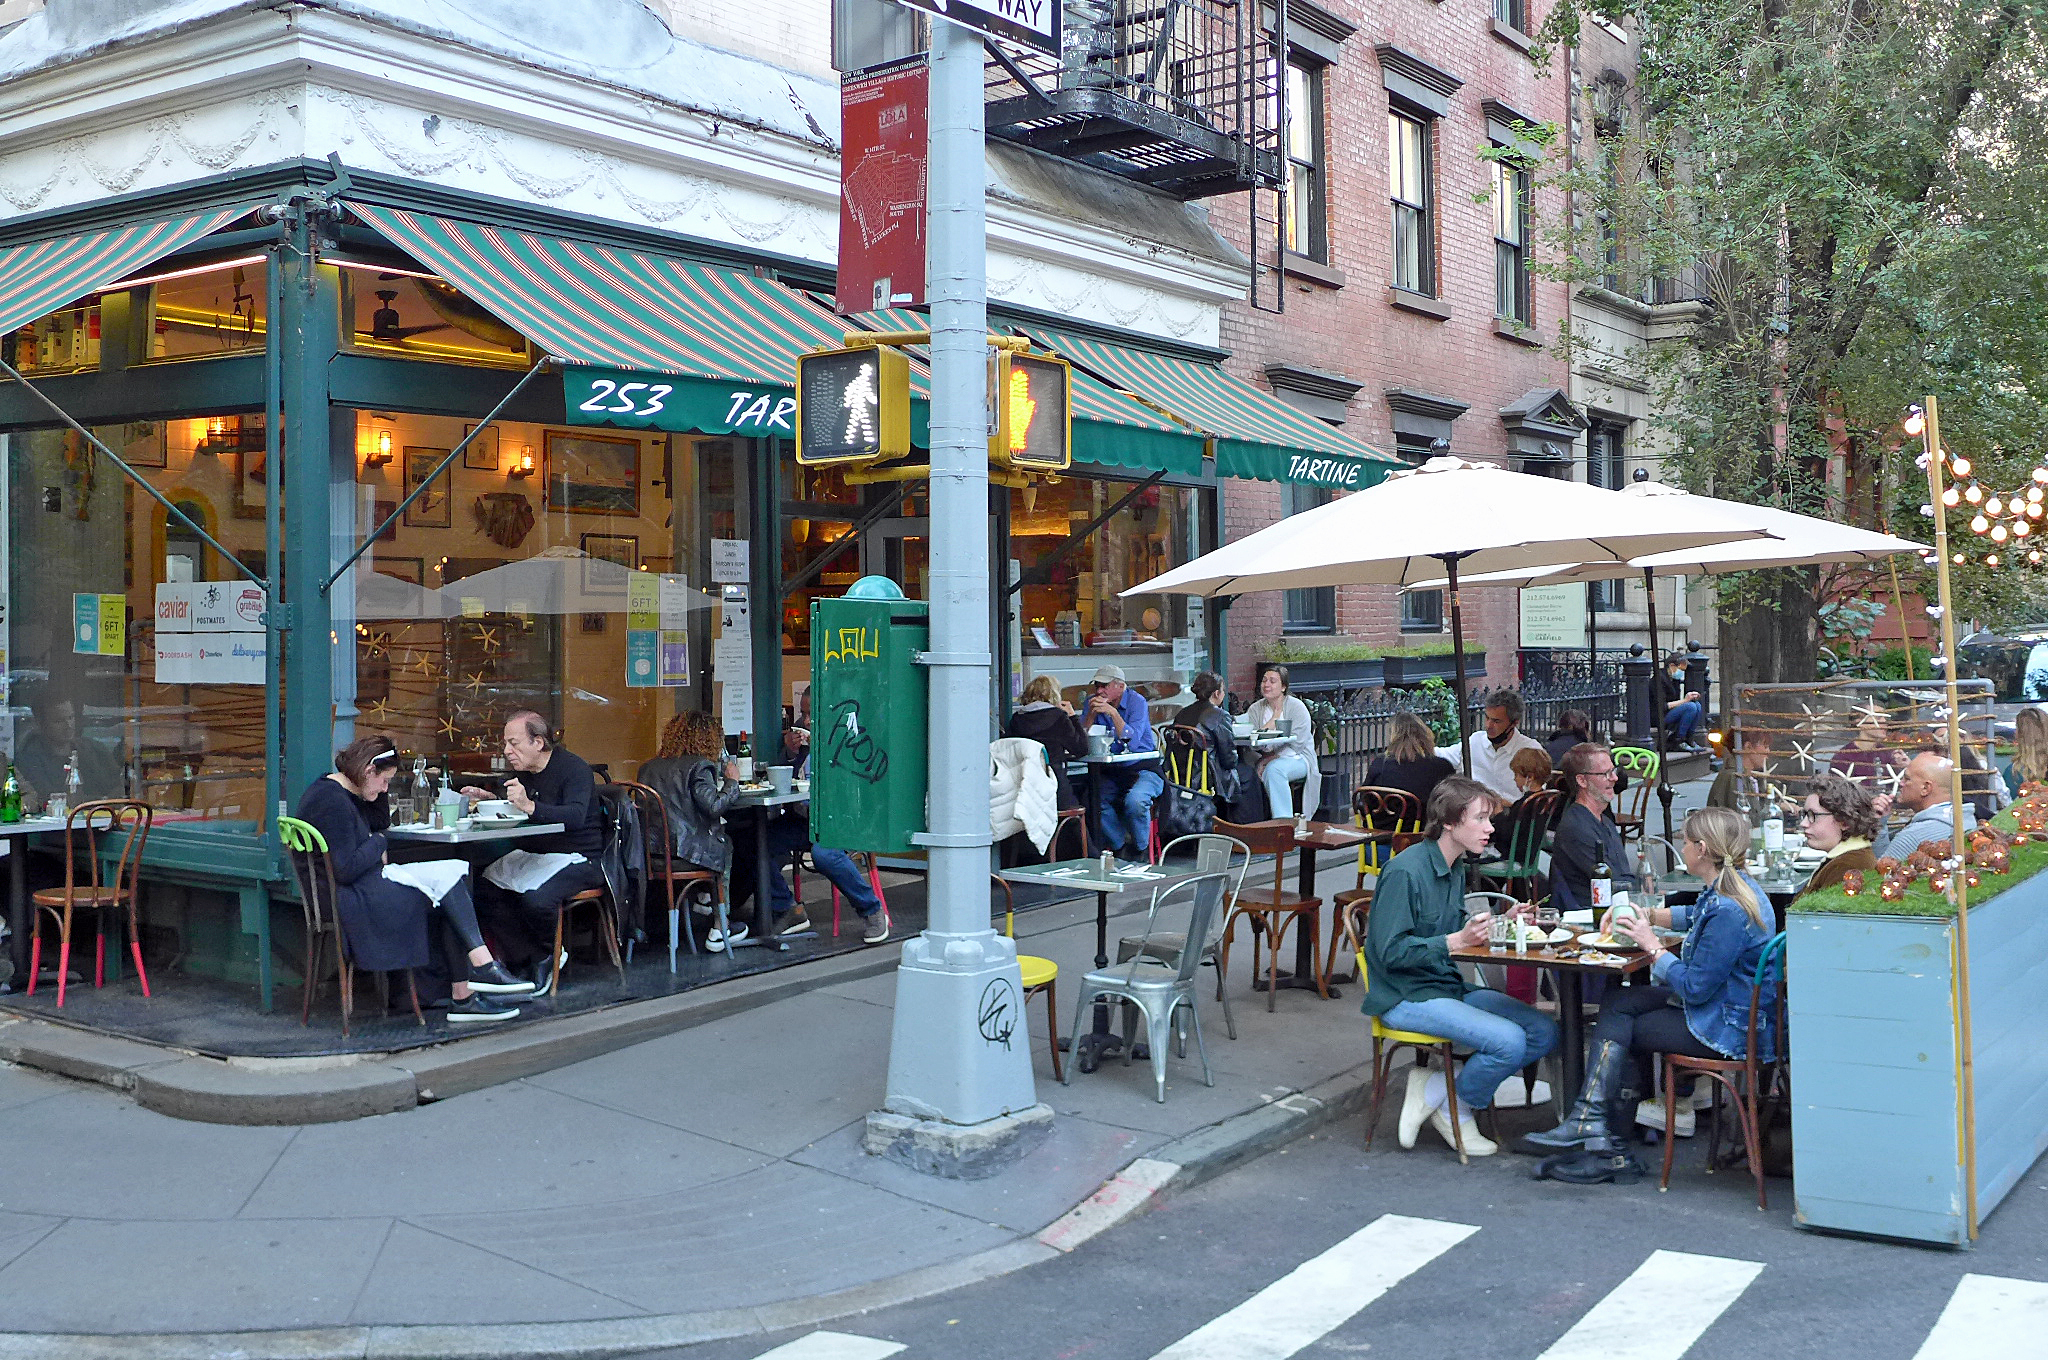 A corner restaurant with seating in the street covered by umbrellas.